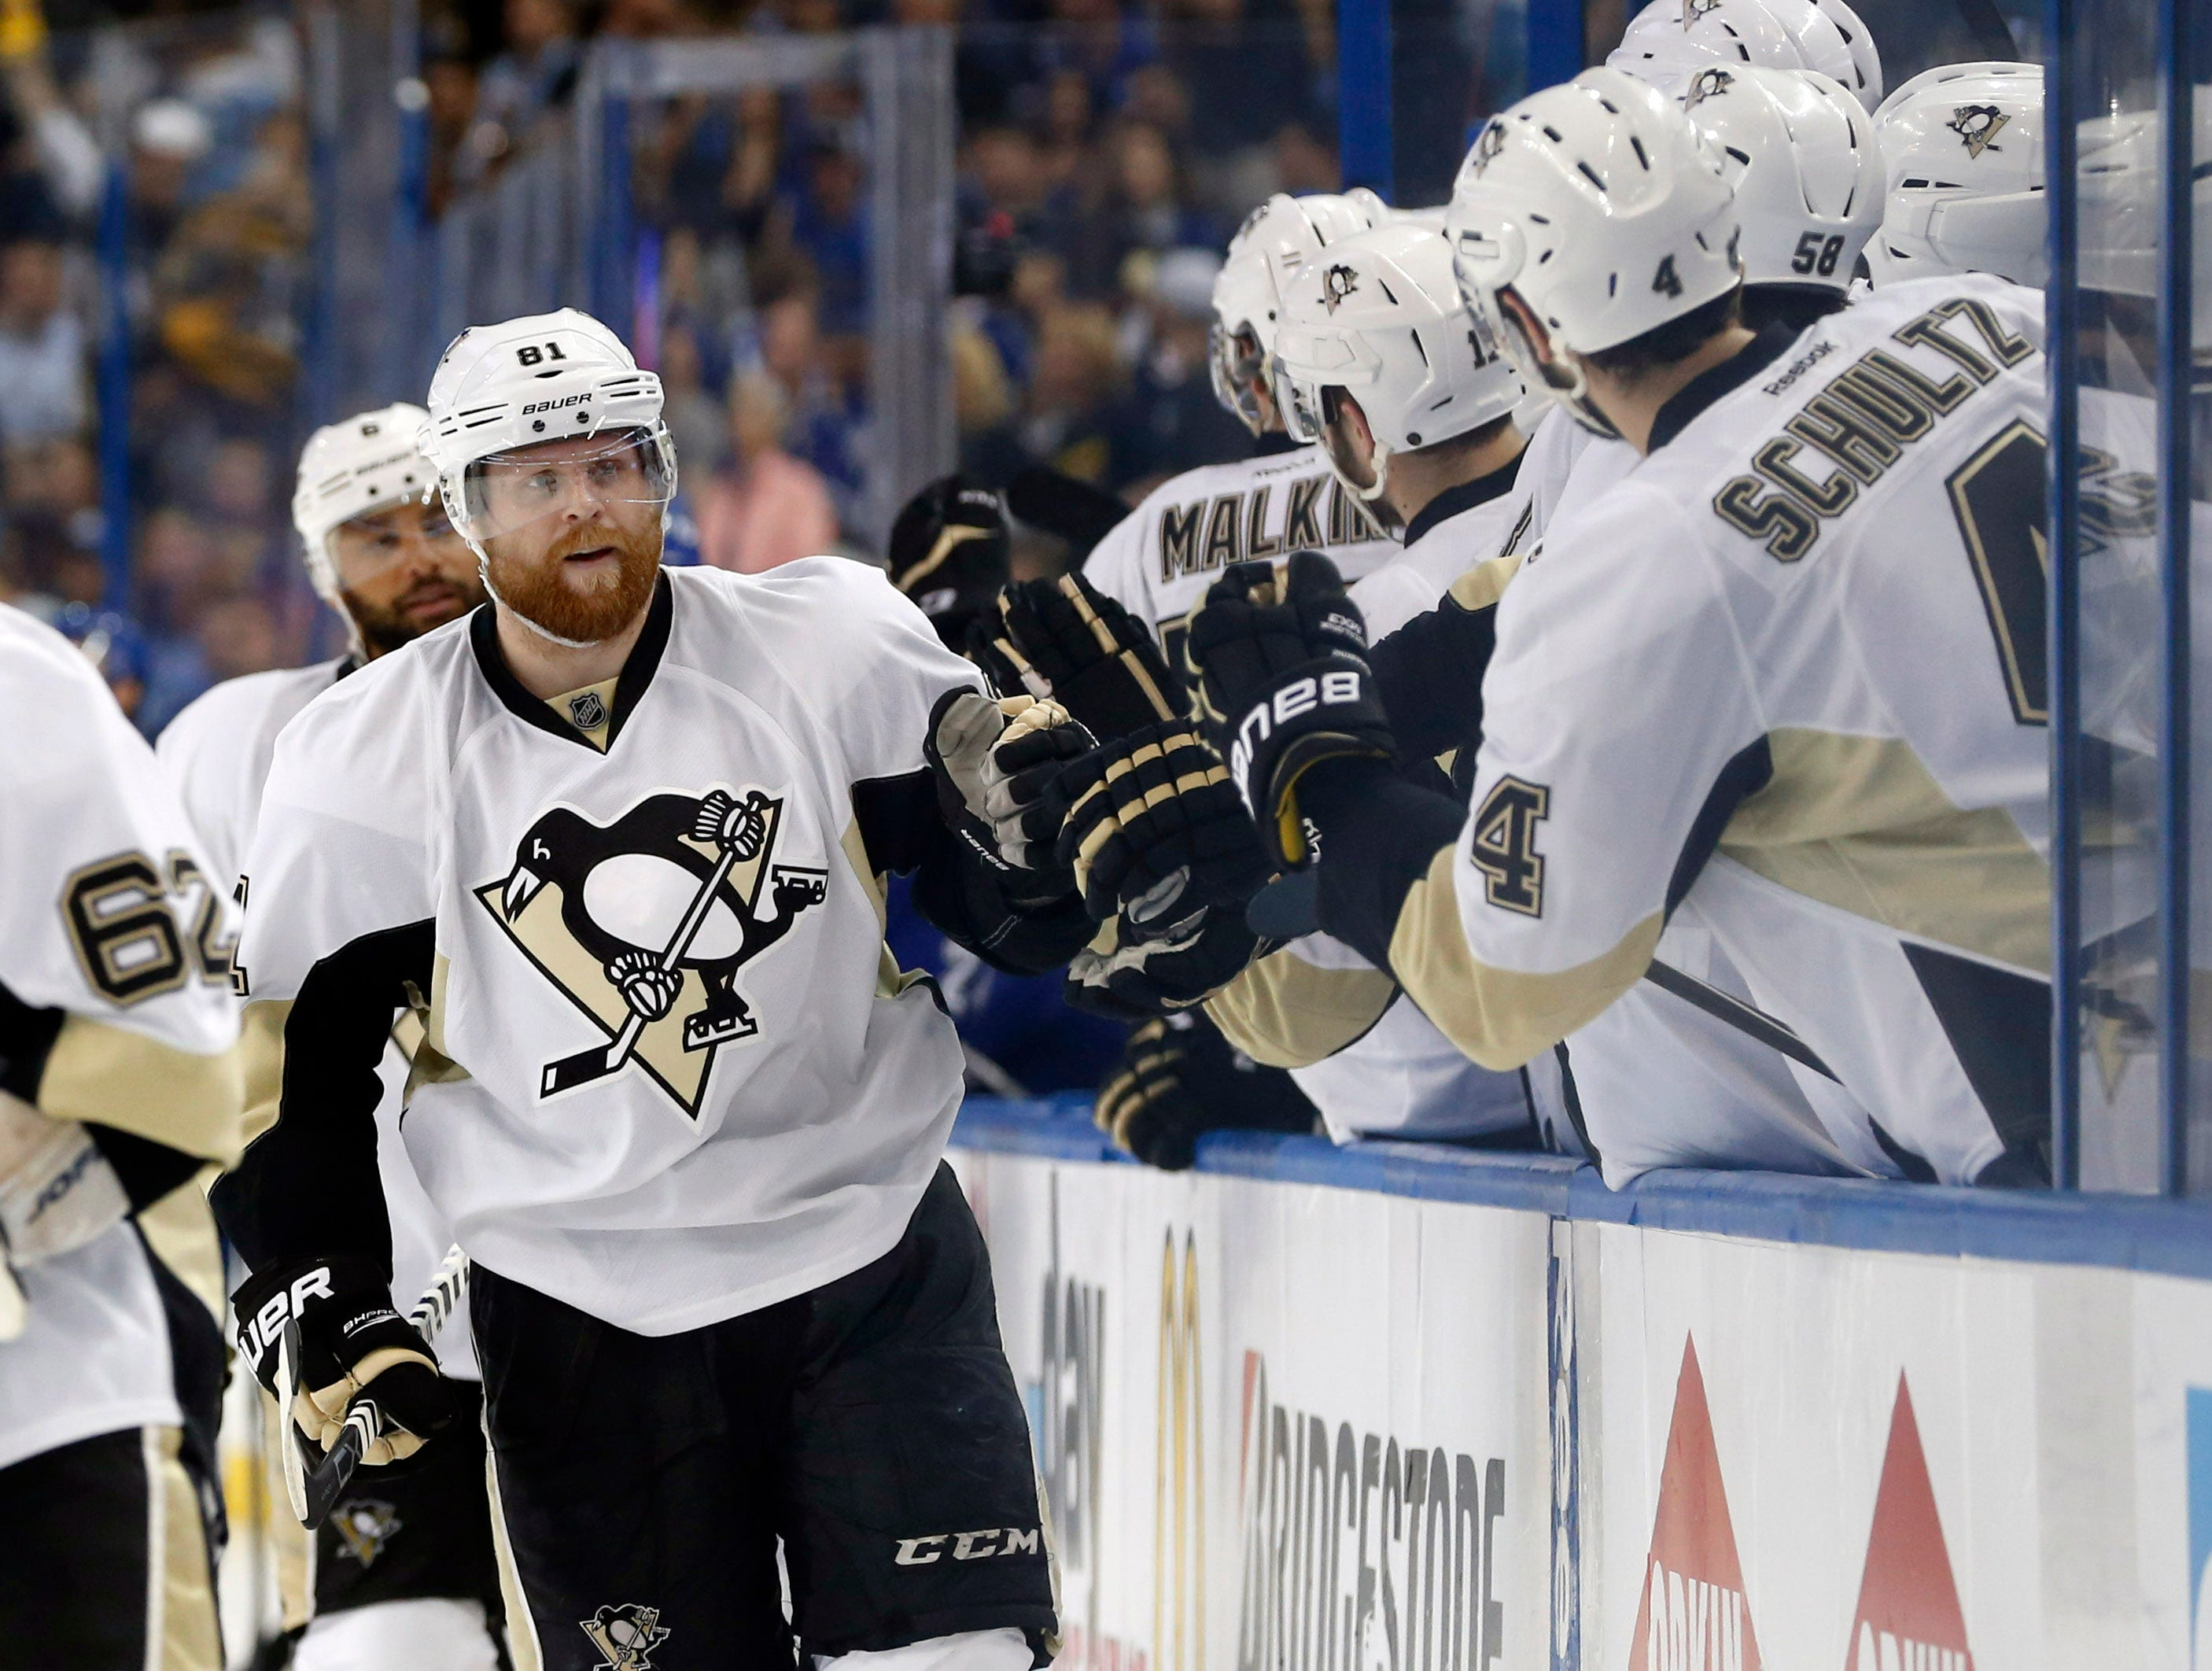 kare11.com | Oft-criticized Phil Kessel is letting his play do the ...